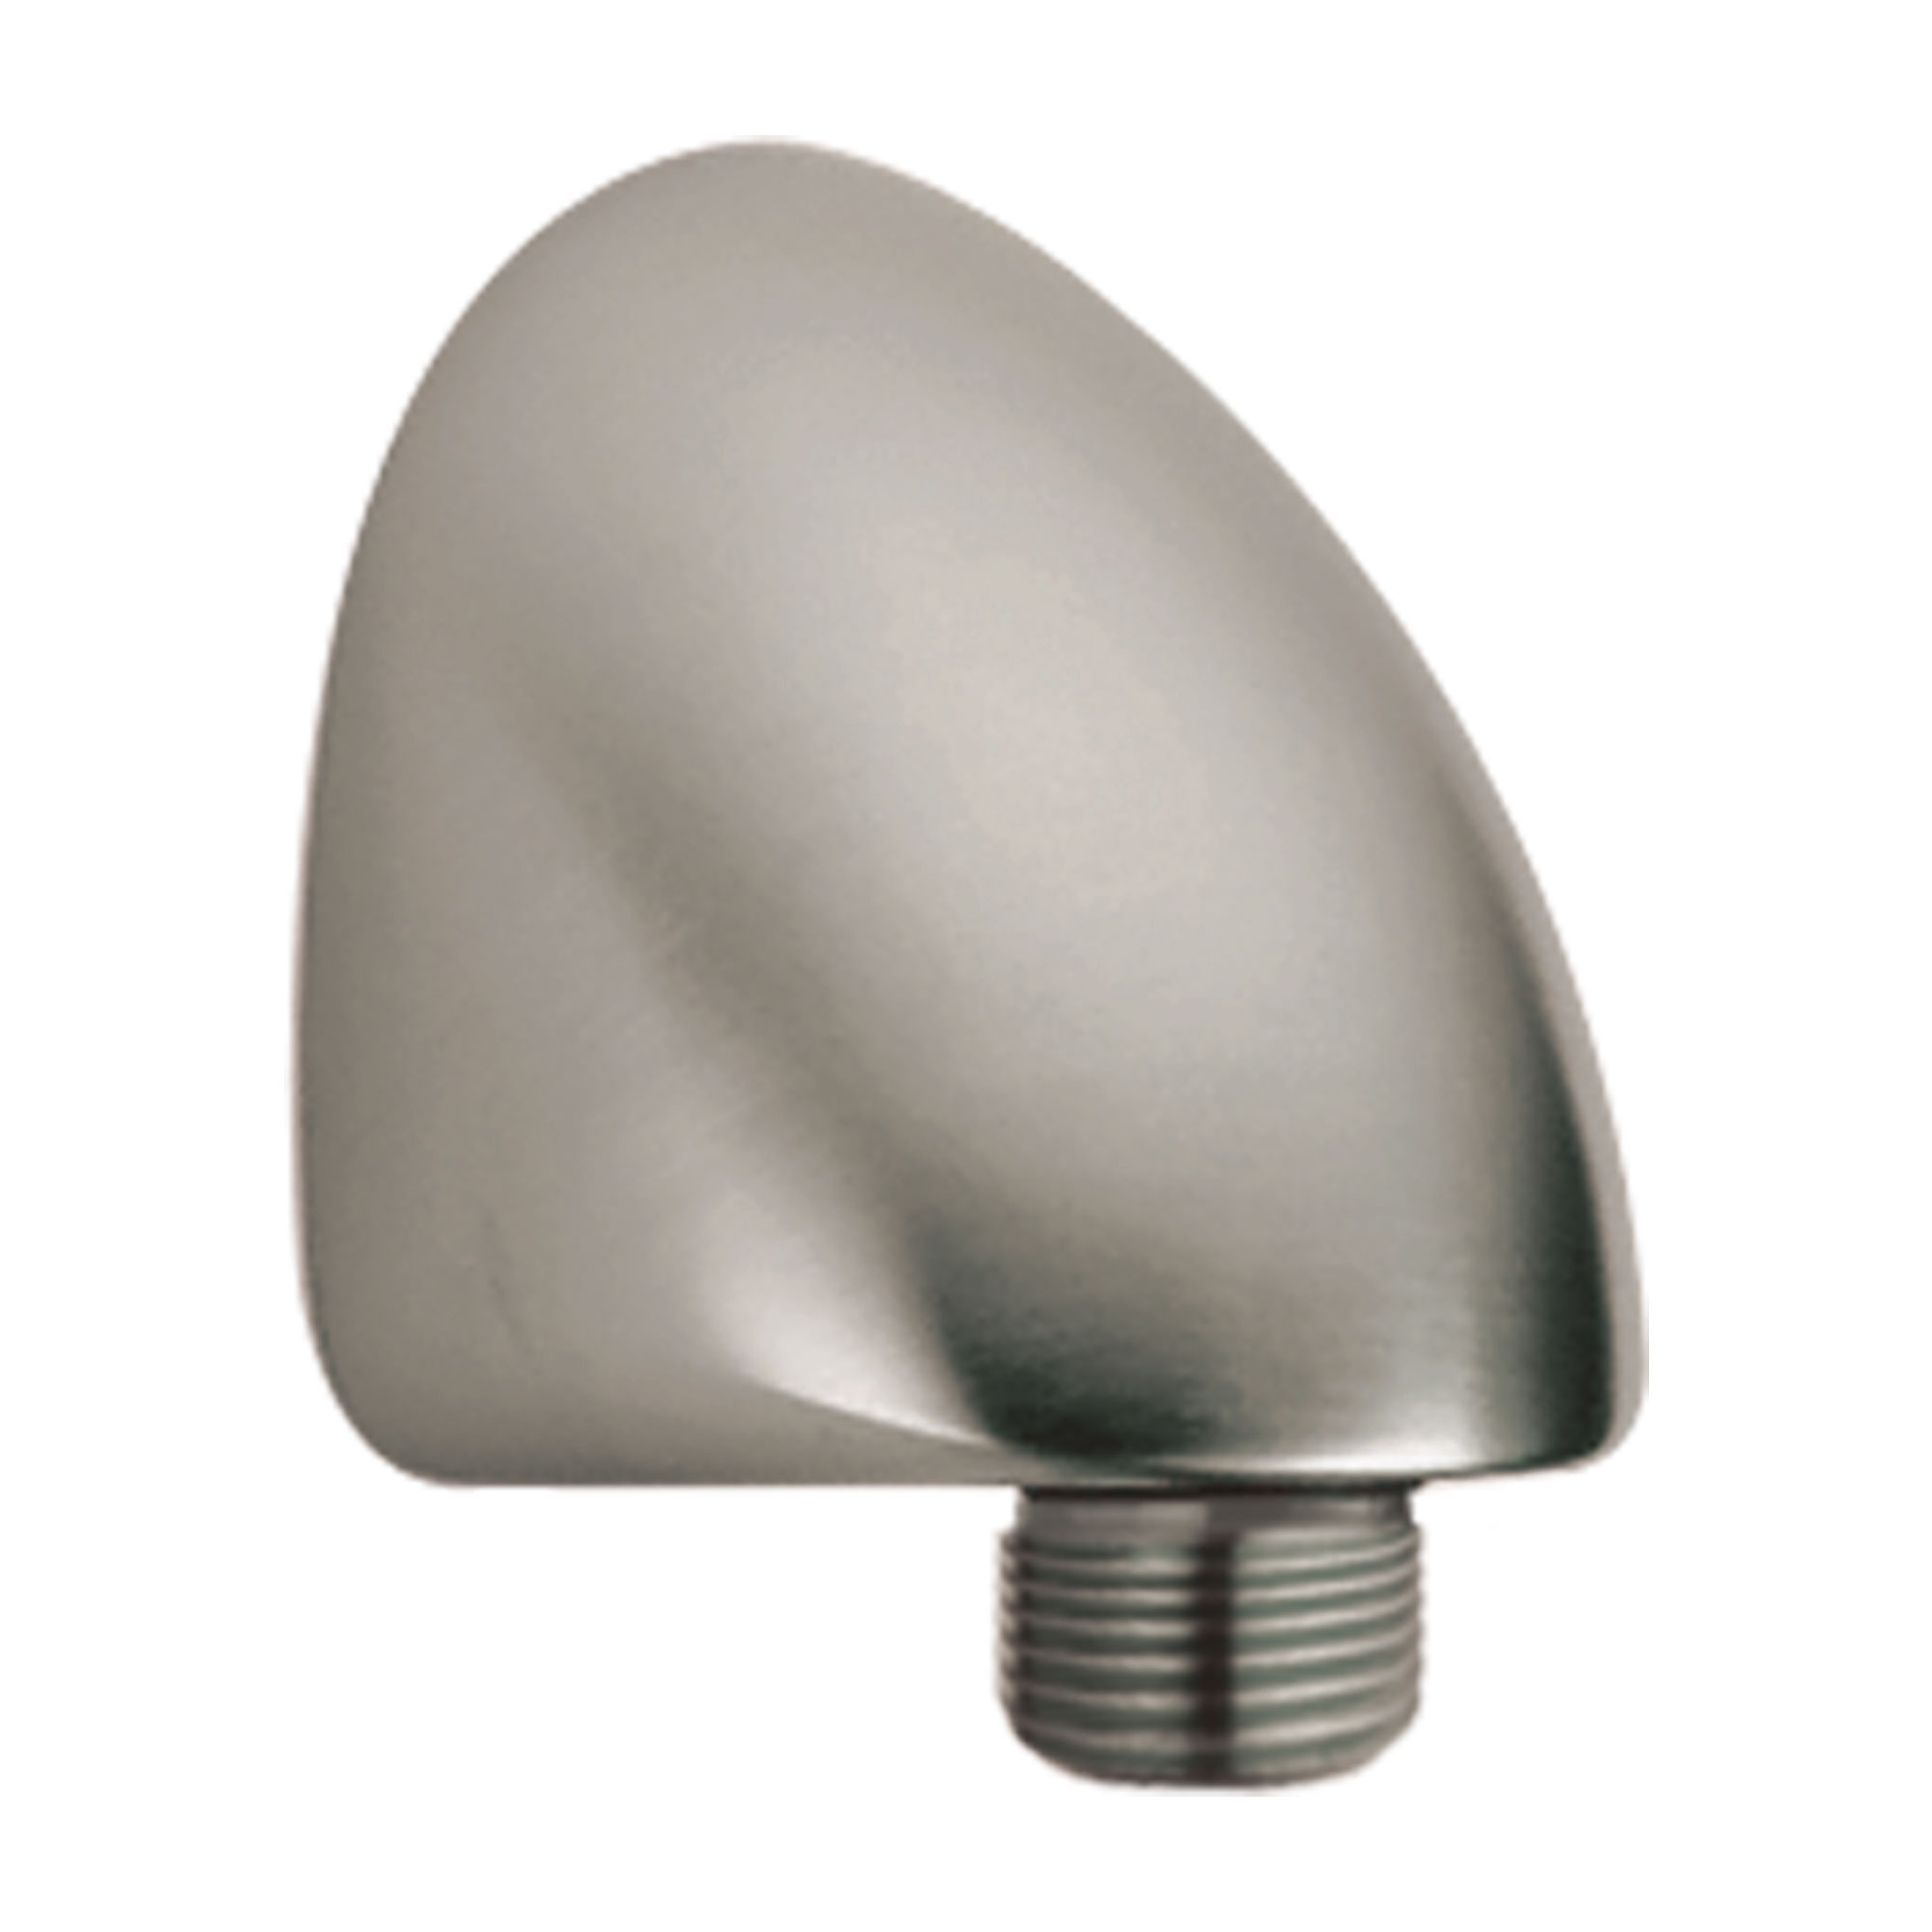 Delta 50560-SS Wall Elbow for Hand Shower